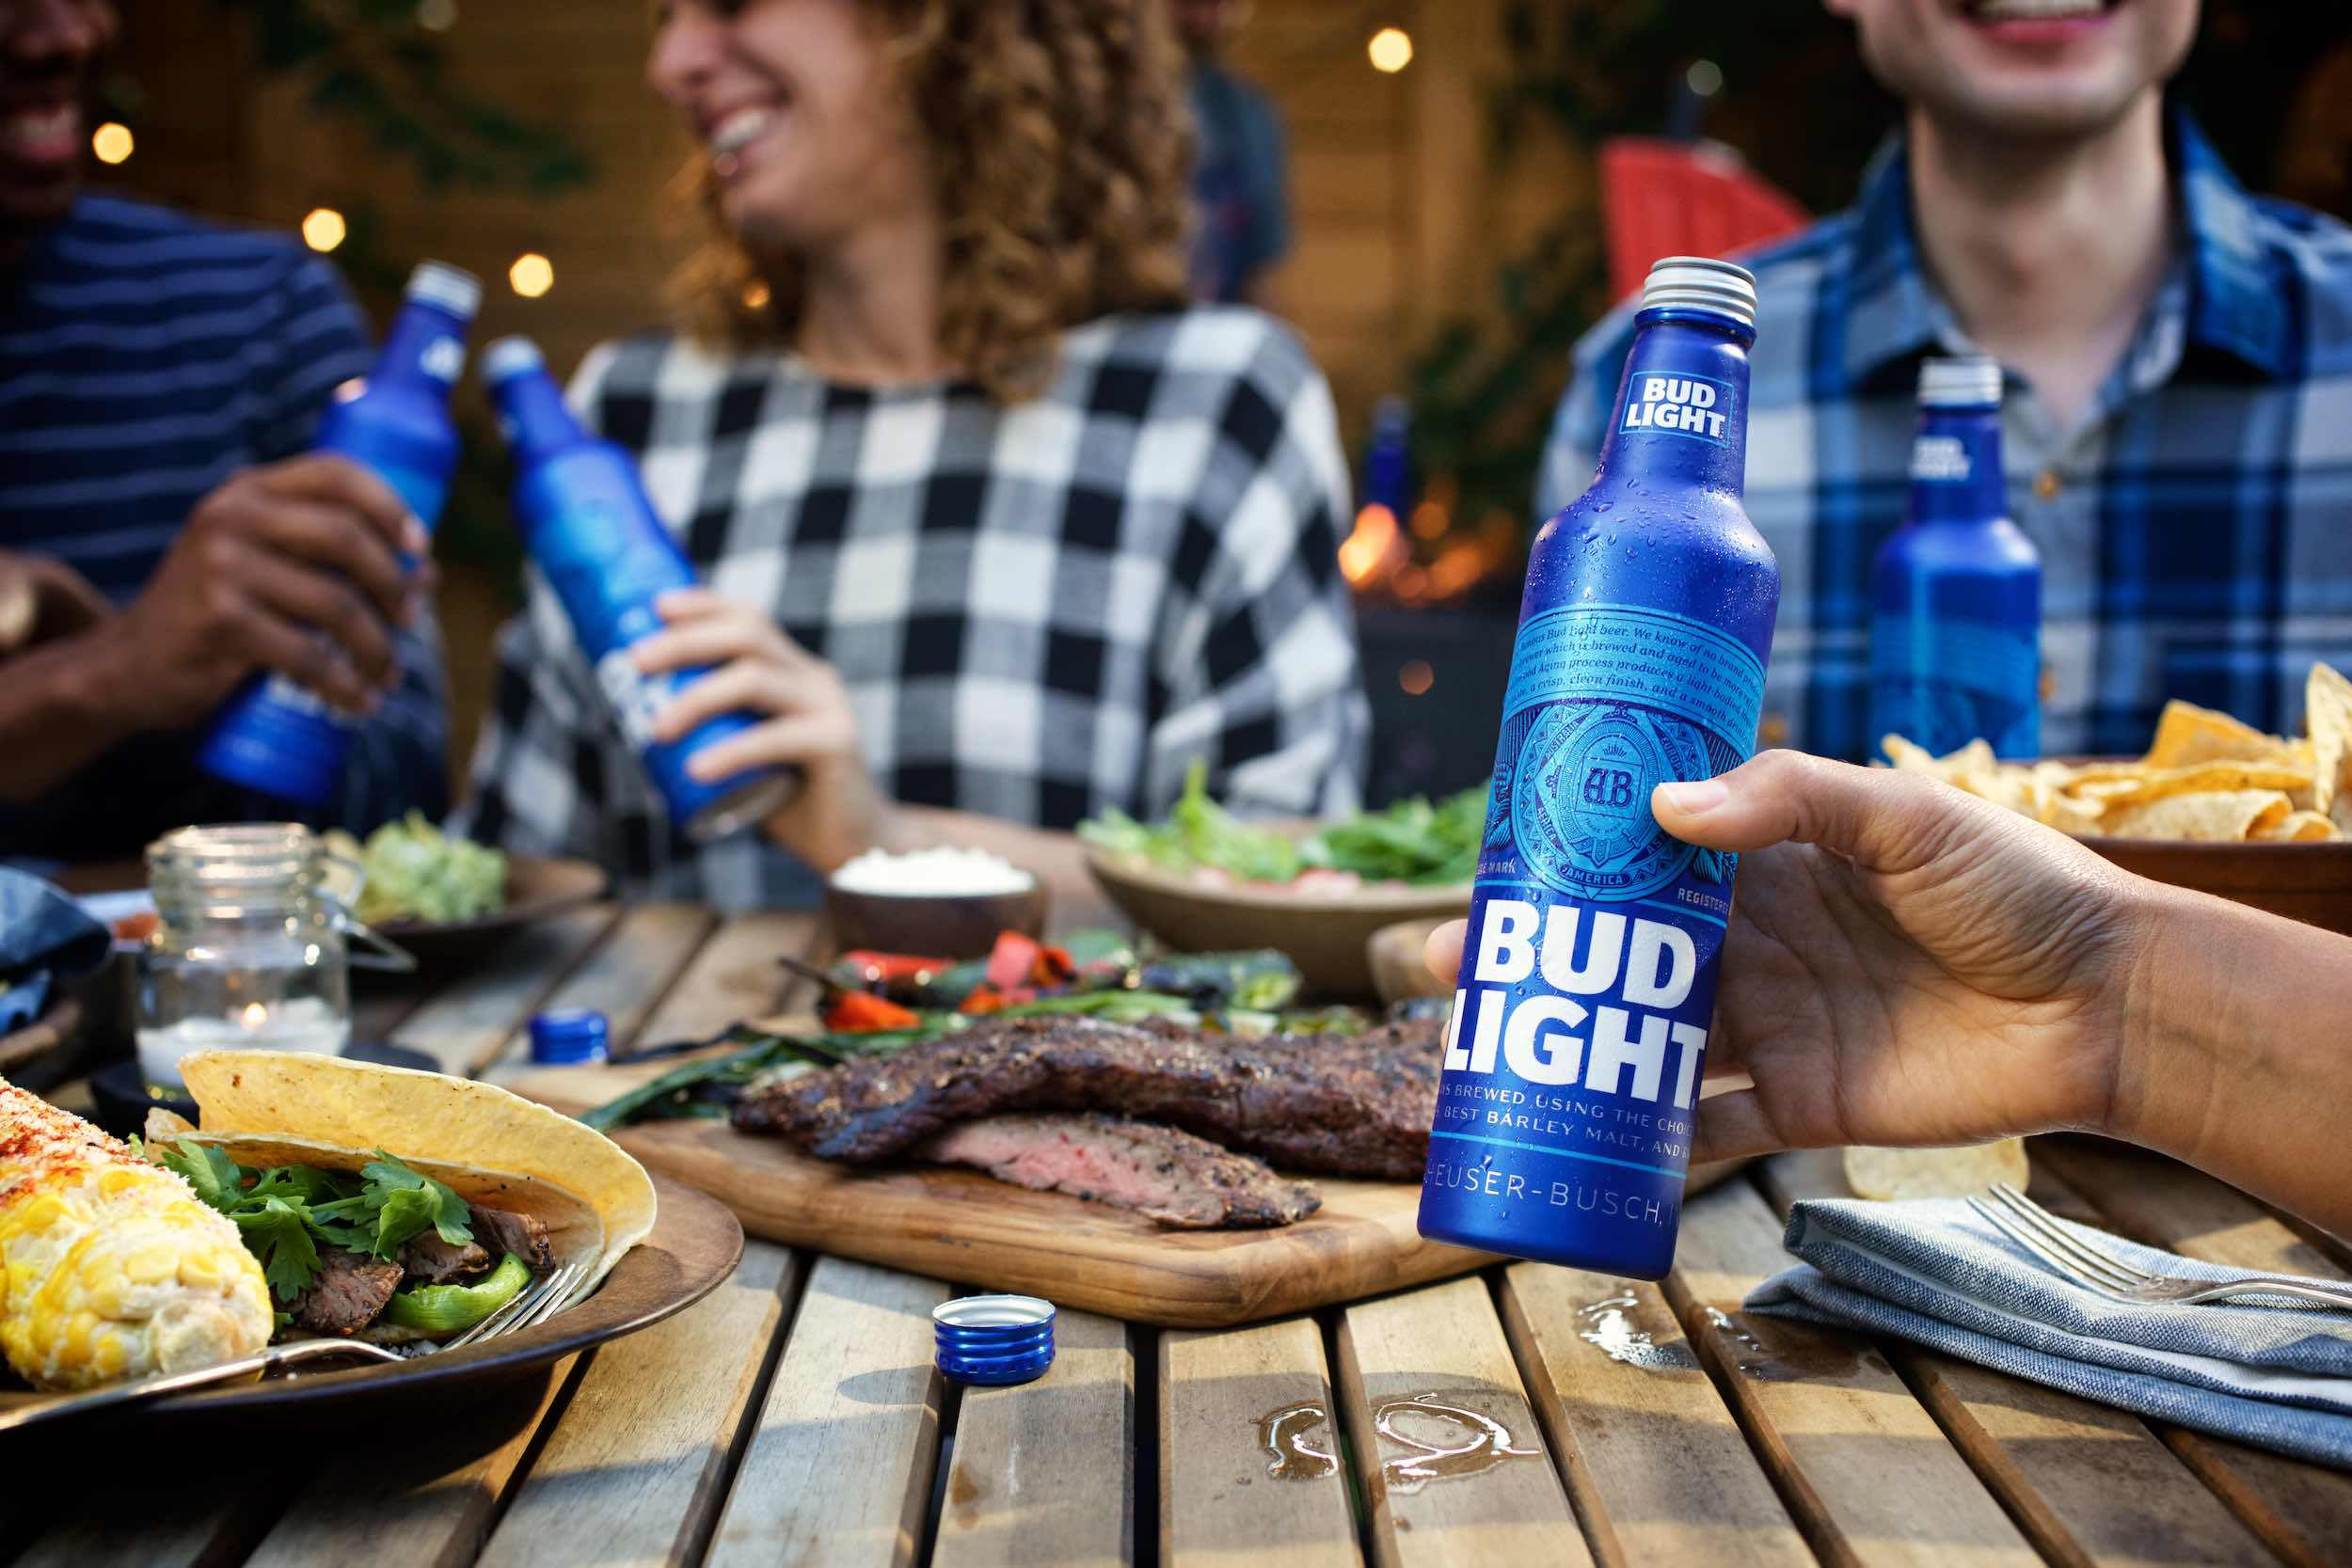 Jody Horton Photography - Bud Light aluminum bottles at backyard BBQ.